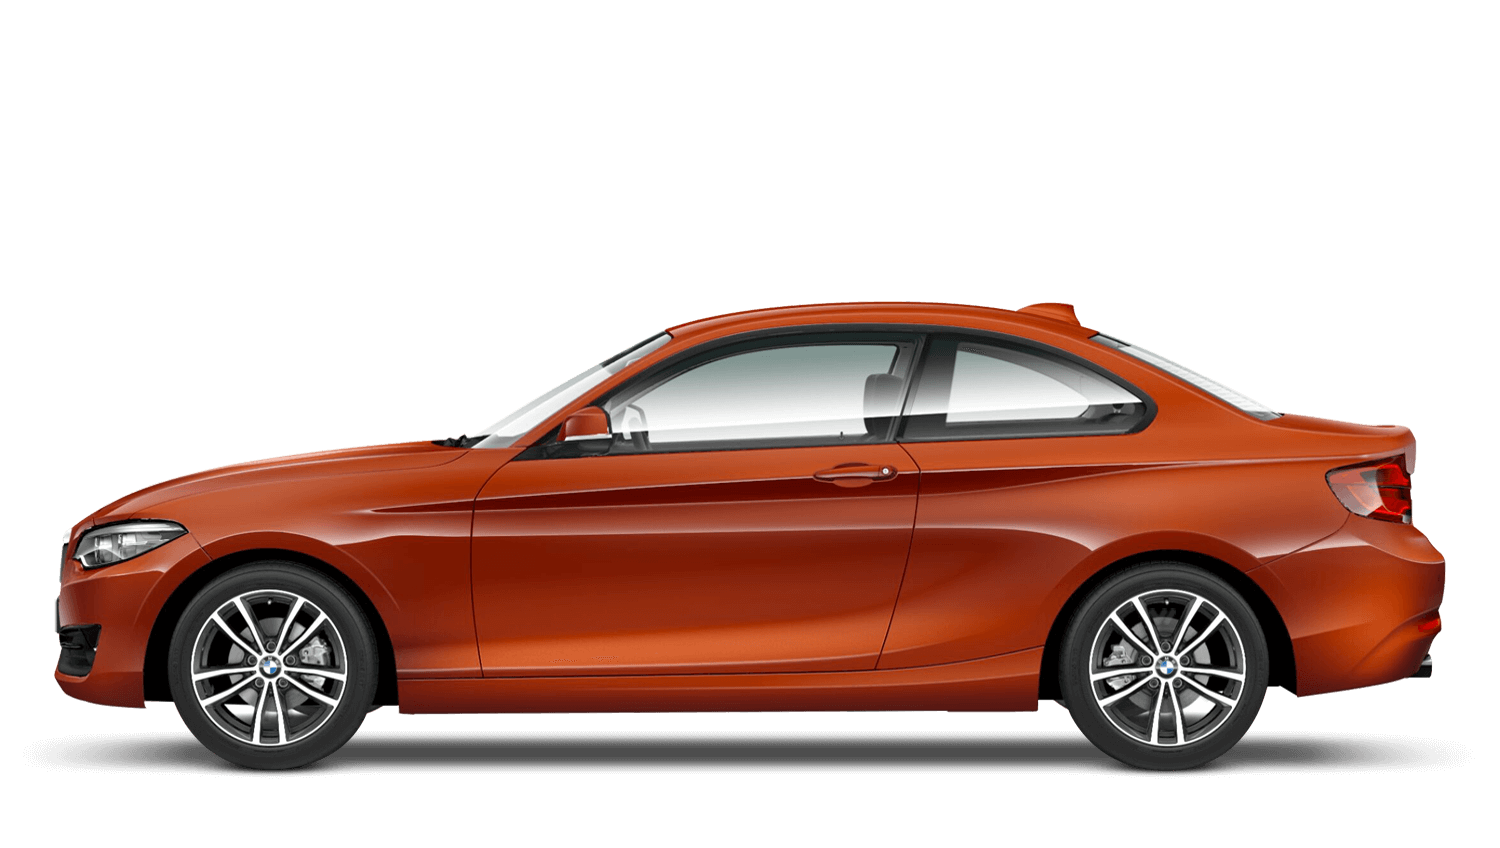 Chandlers Bmw Brighton >> BMW 2 Series Coupé Sport | Finance Available | Barons & Chandlers BMW